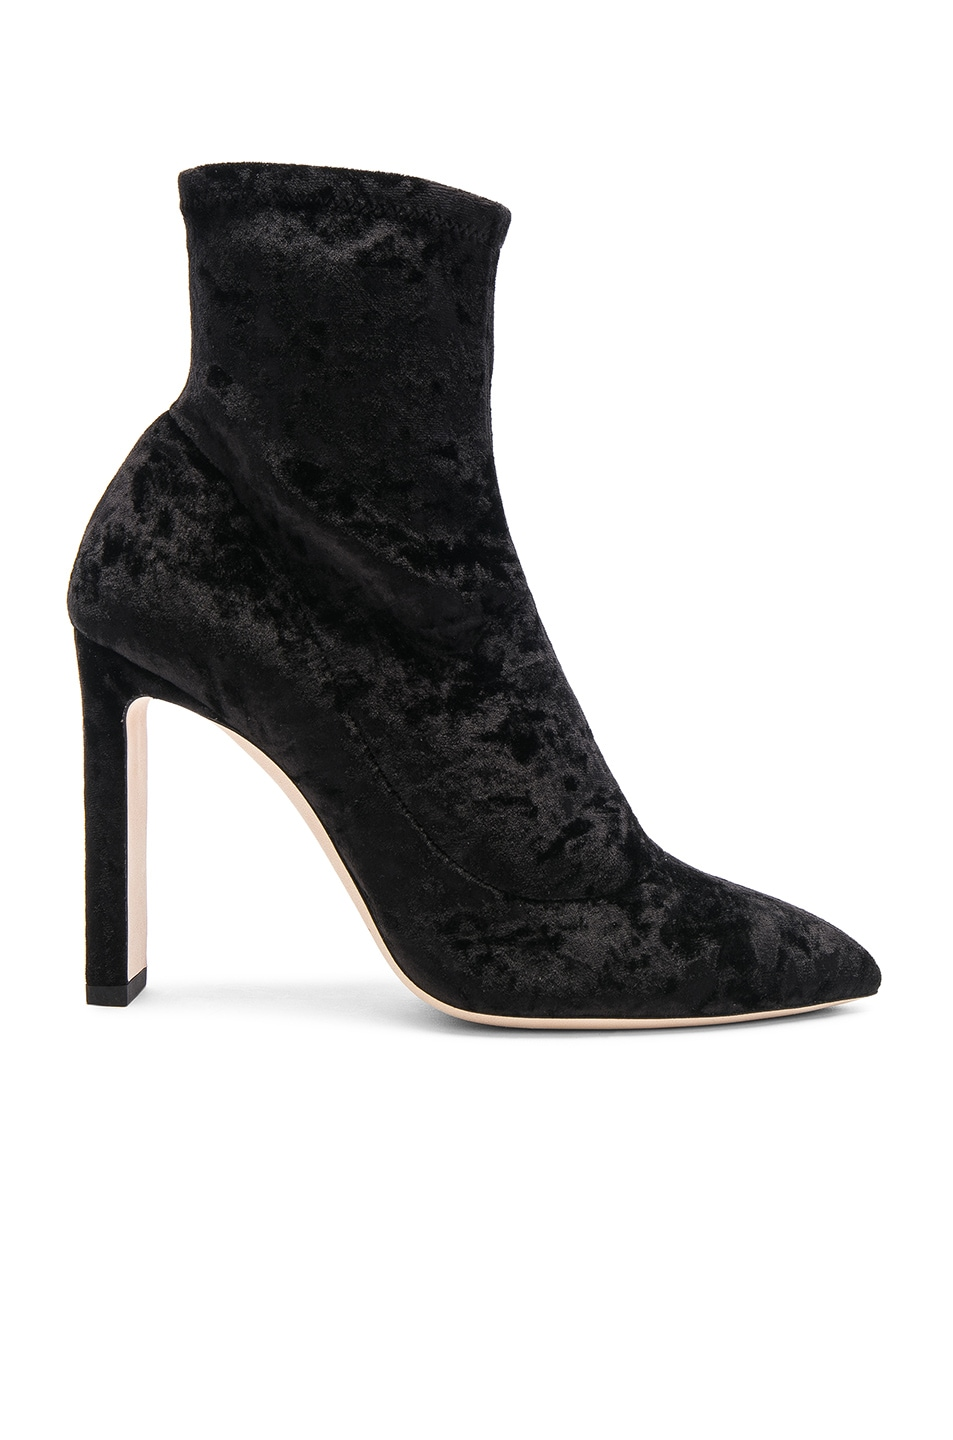 Image 1 of Jimmy Choo Crushed Stretch Velvet Louella Boots in Black